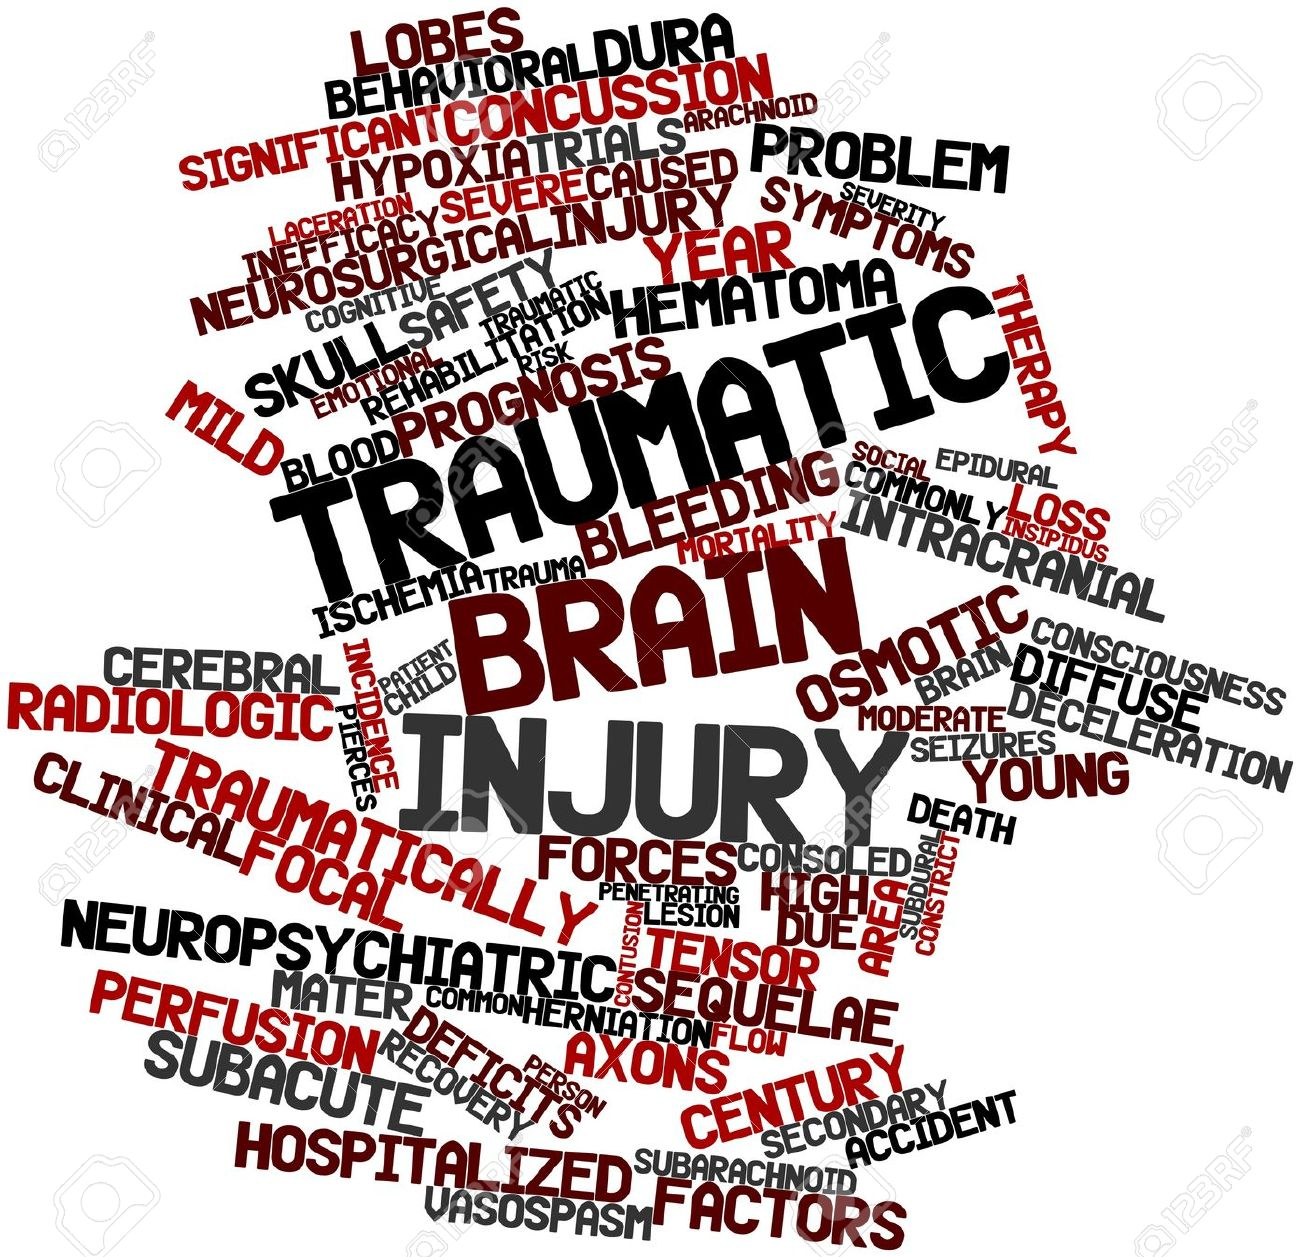 Important Facts about a Traumatic Brain Injury